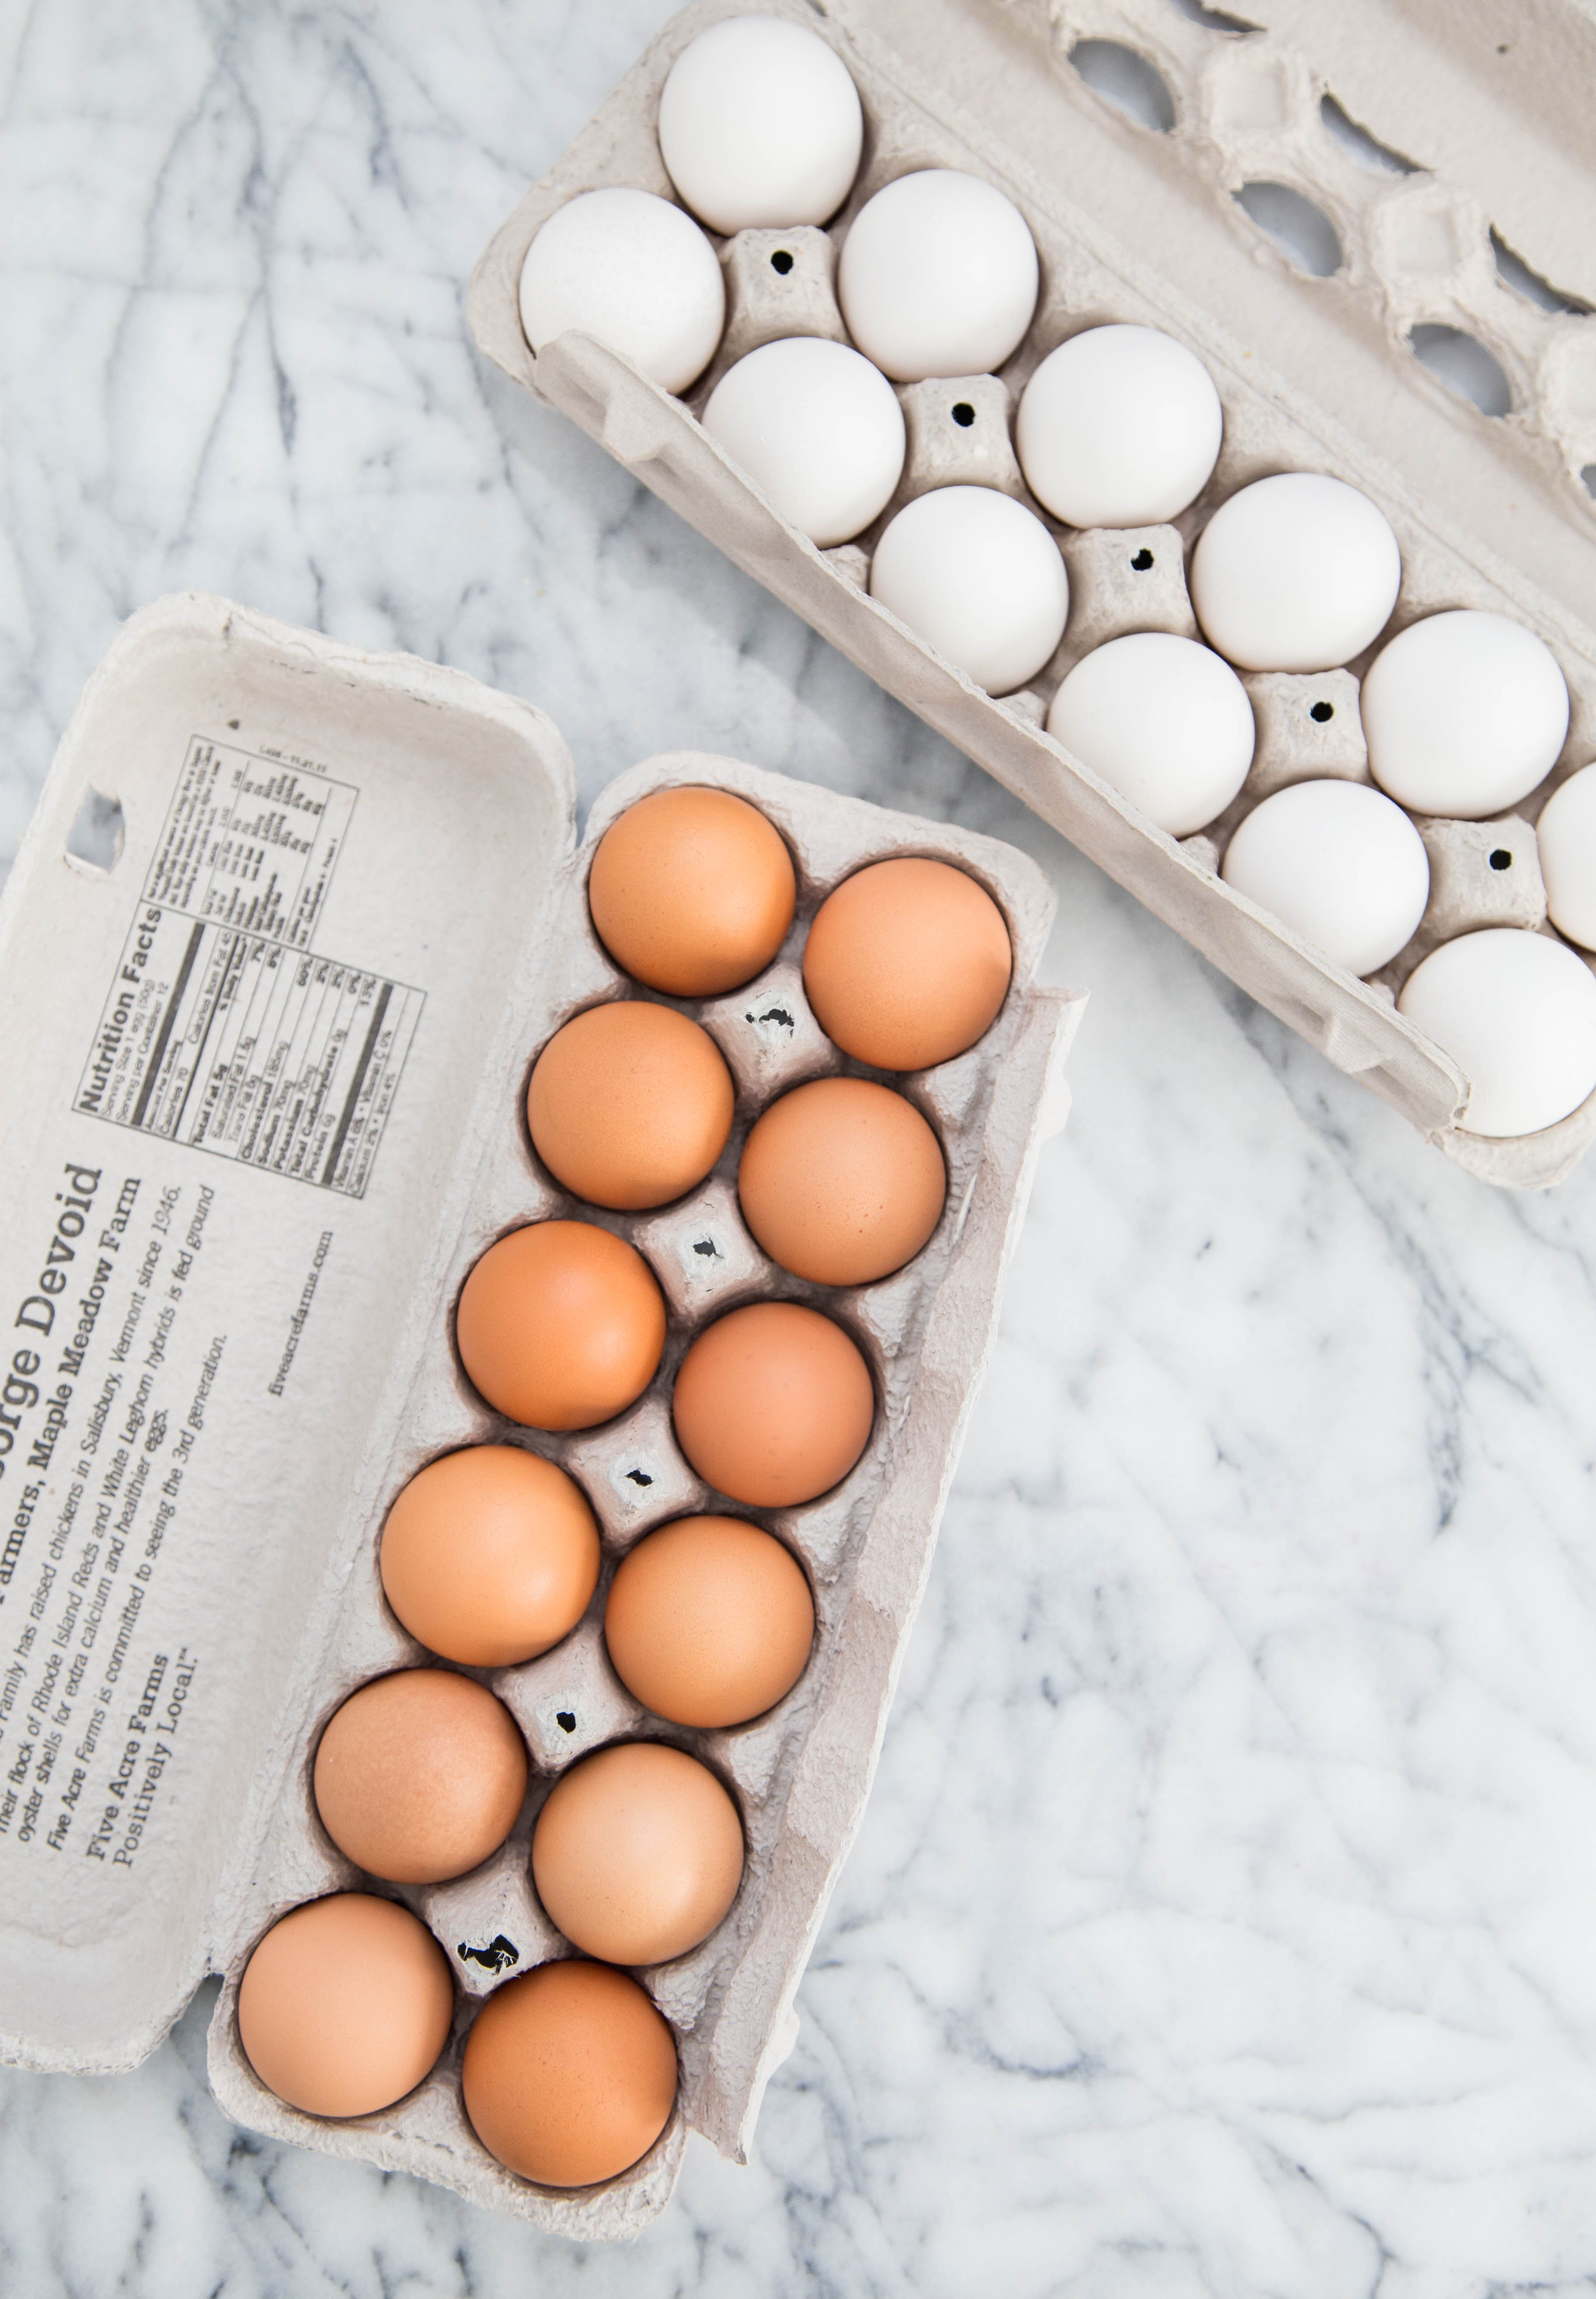 Brown & White Eggs: Is There a Difference? | Kitchn